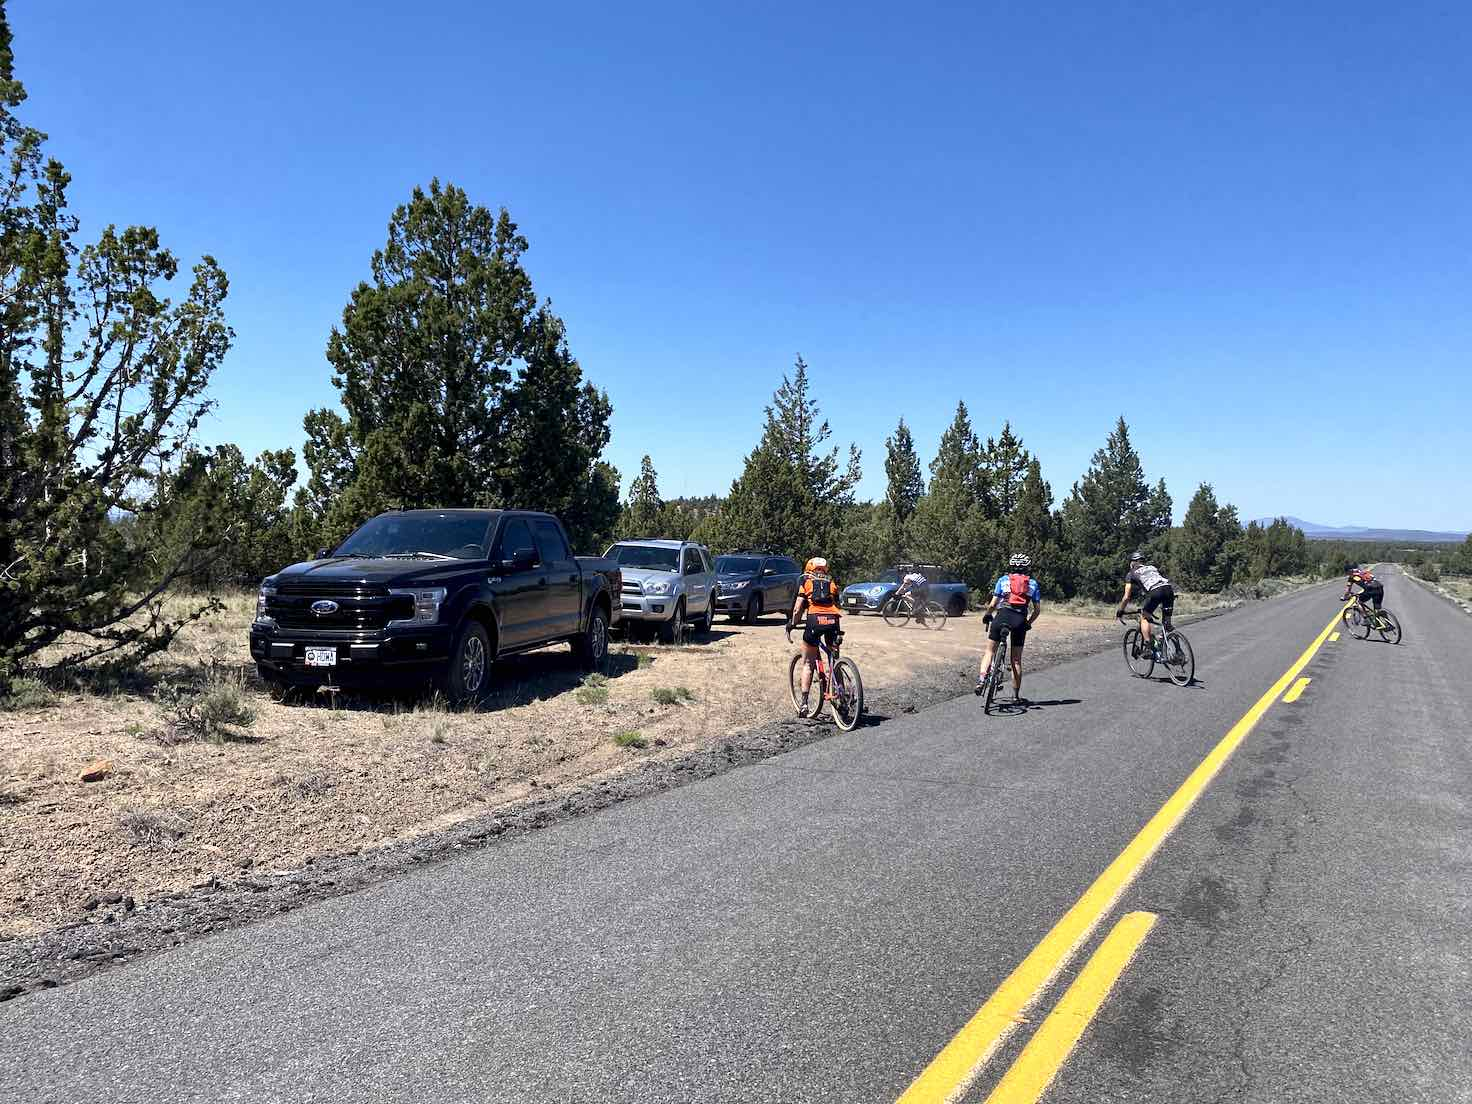 Cyclists ending ride at pull out along the highway.